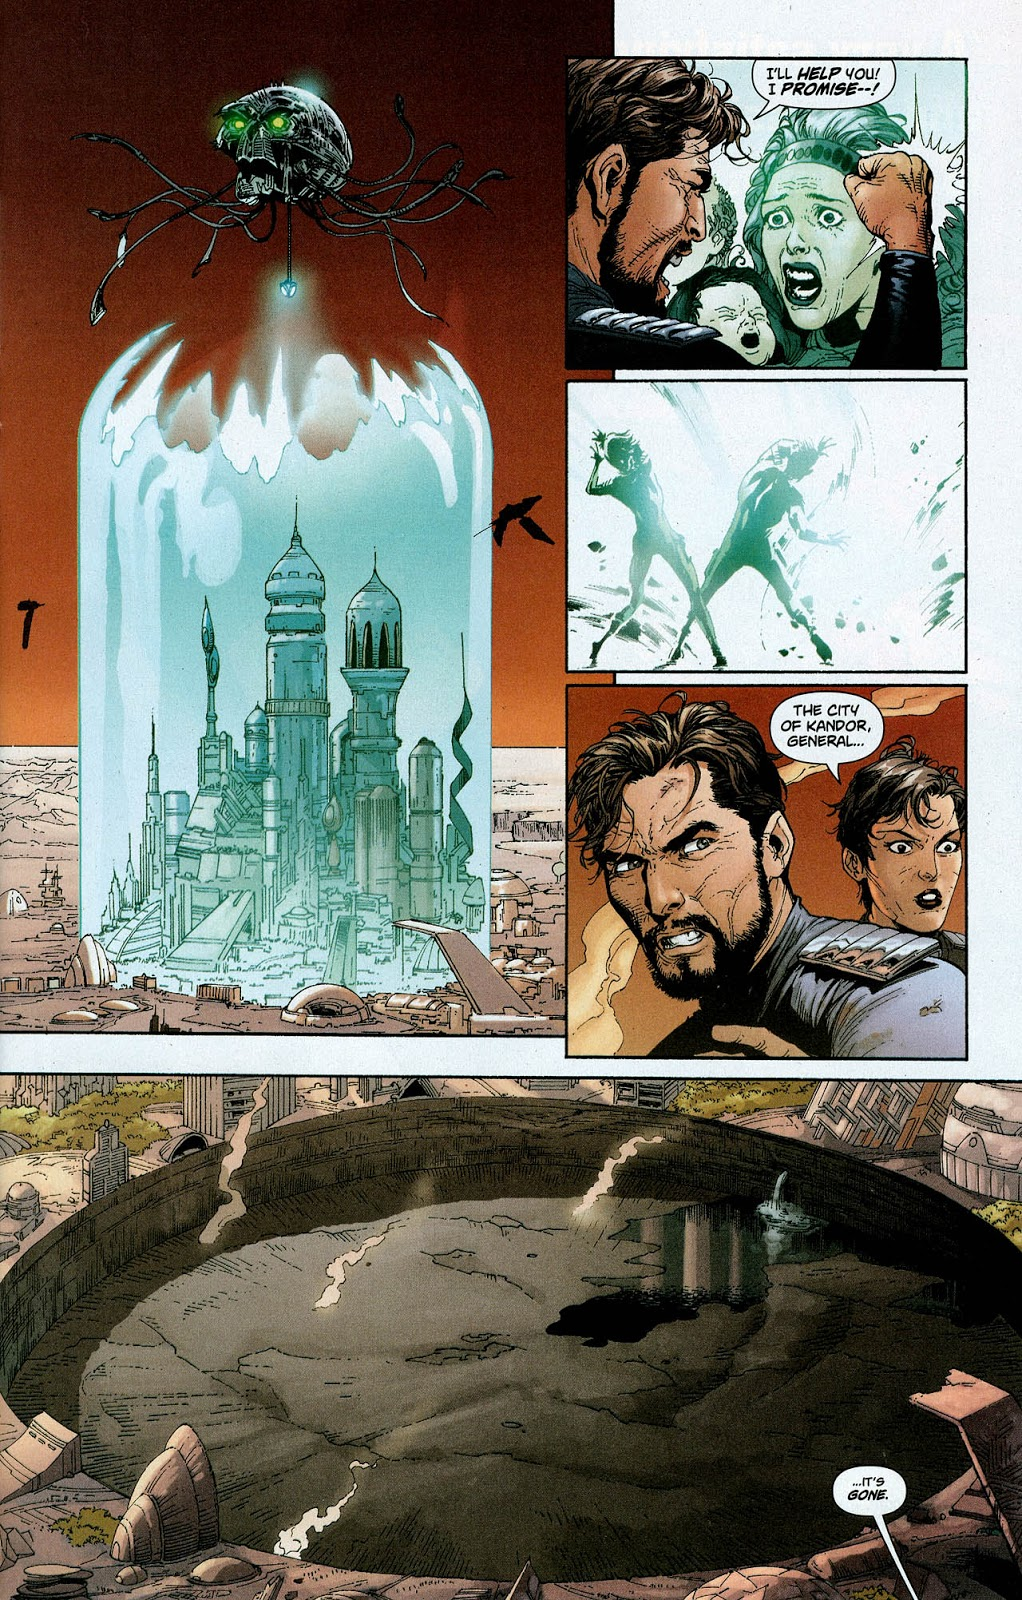 In 'Action Comics' (2008) #866, General Zod and Ursa watch as Brainiac steals Kandor on Krypton 35 years ago.